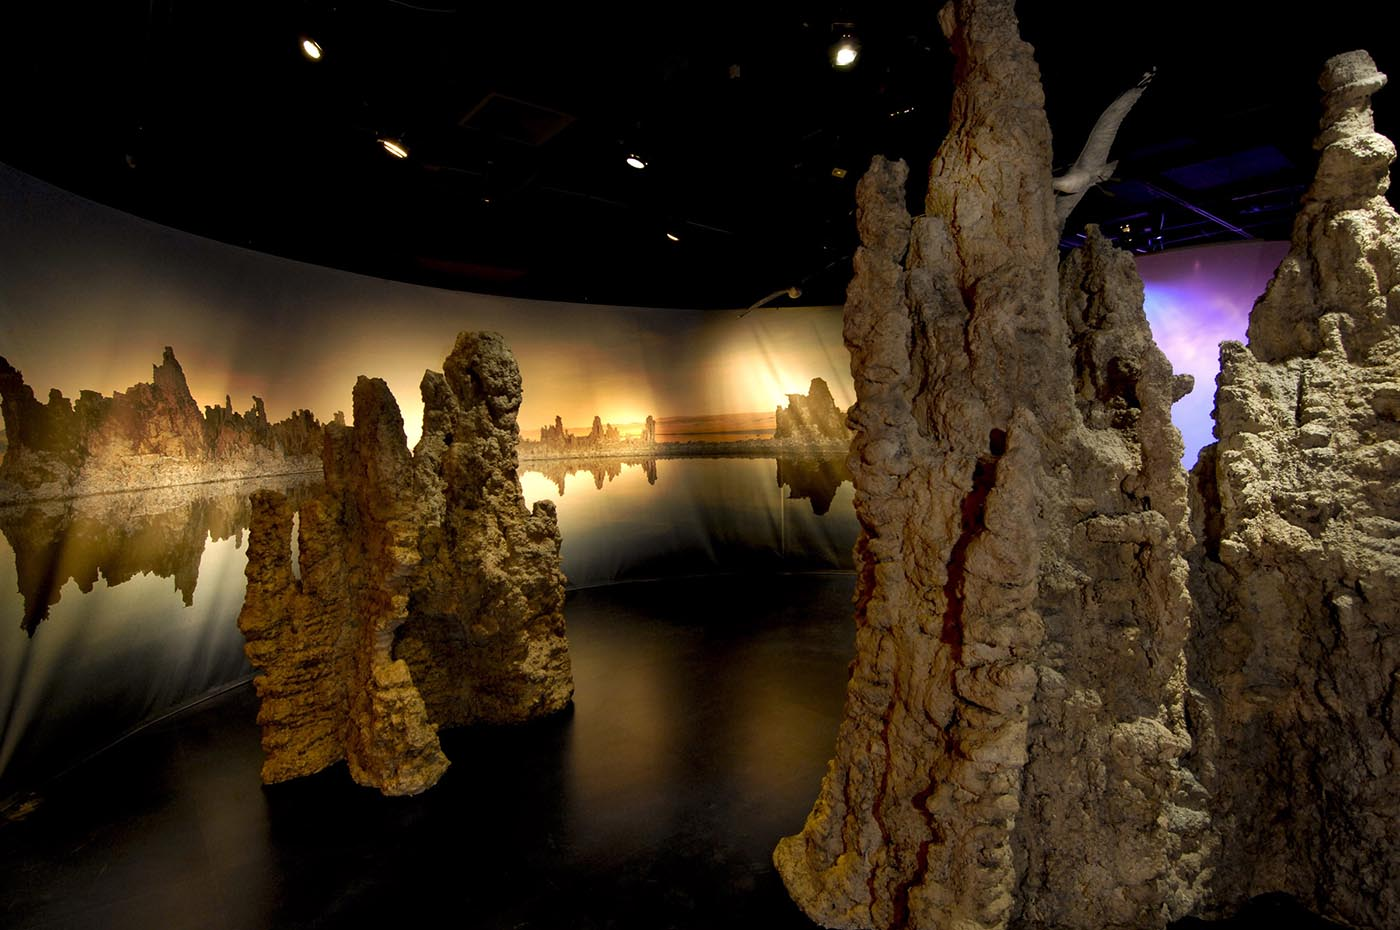 Brown-coloured mineral formations rise in front of panels depicting a lakeside scene.